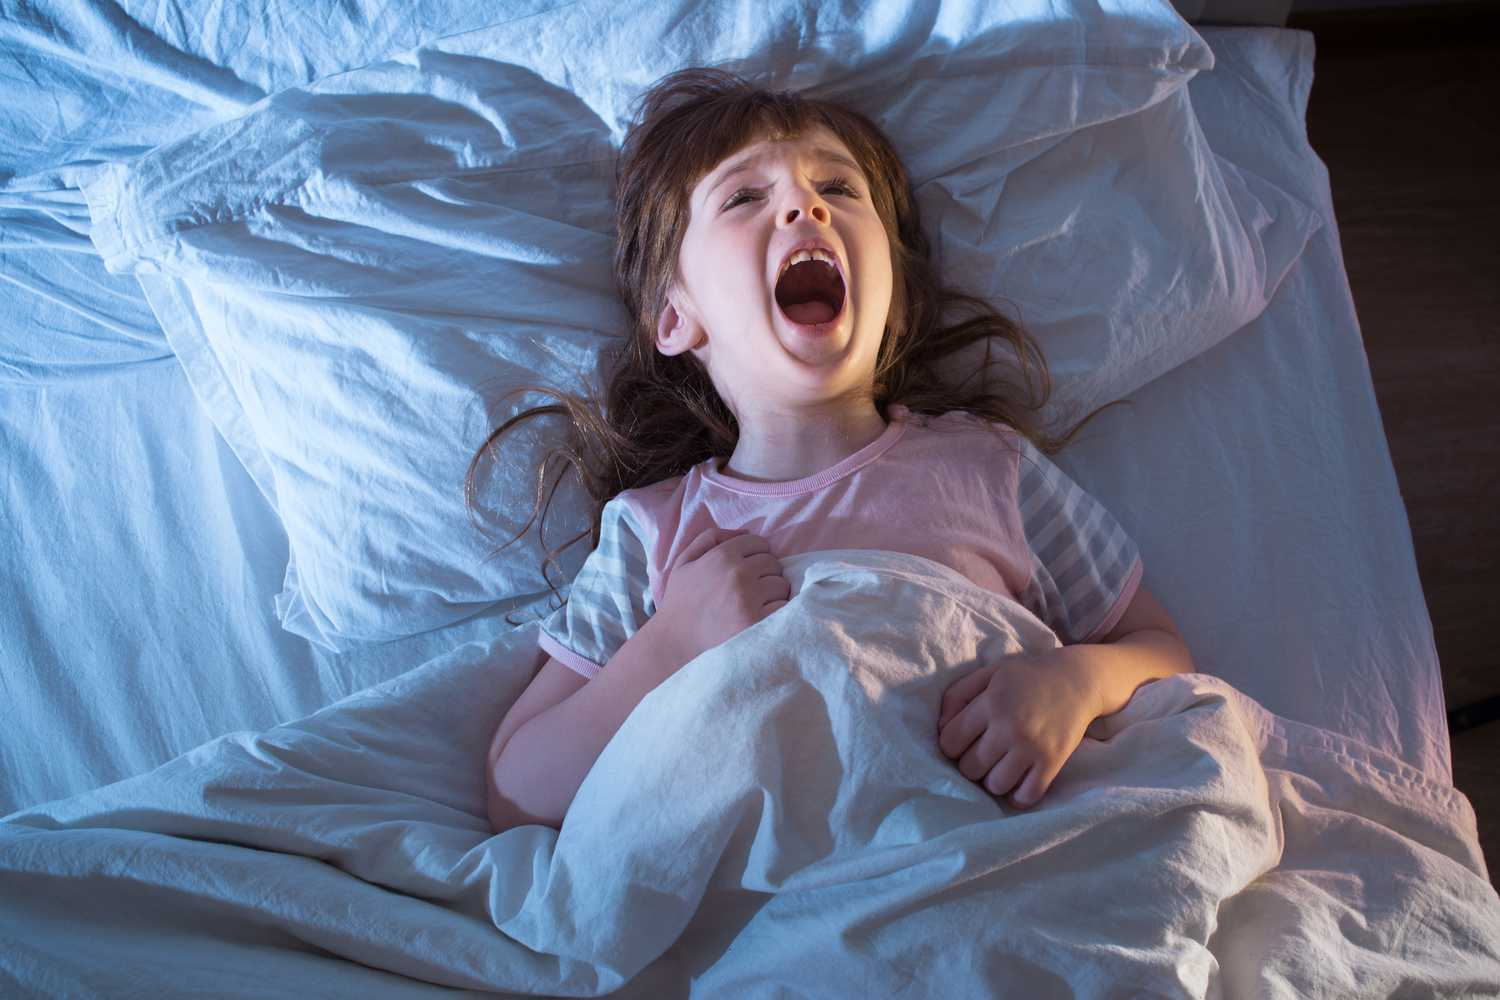 What Causes Your Little Ones to Have Nightmares